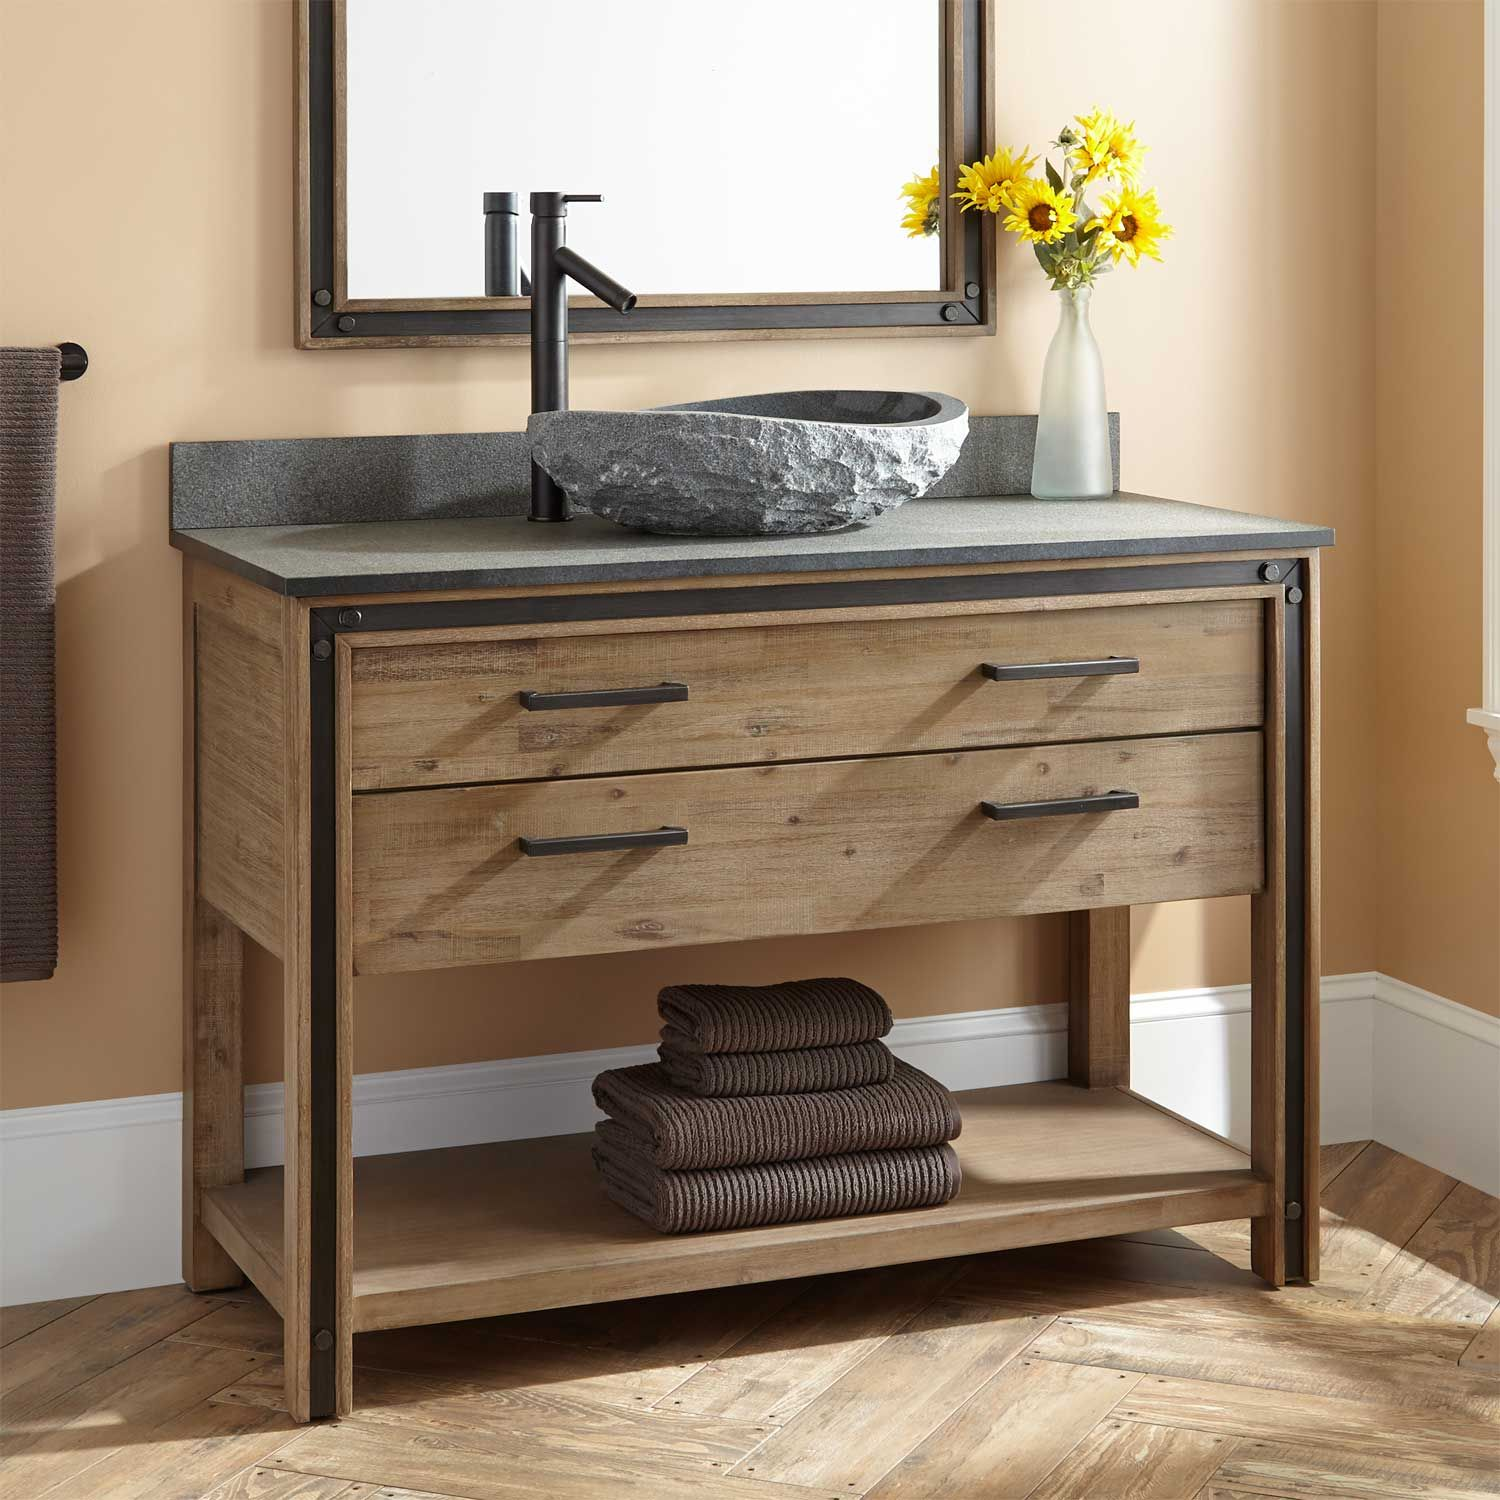 36 Celebration Vessel Sink Vanity Rustic Acacia Bathroom With Images Wood Bathroom Vanity Unique Bathroom Vanity Cheap Bathroom Vanities